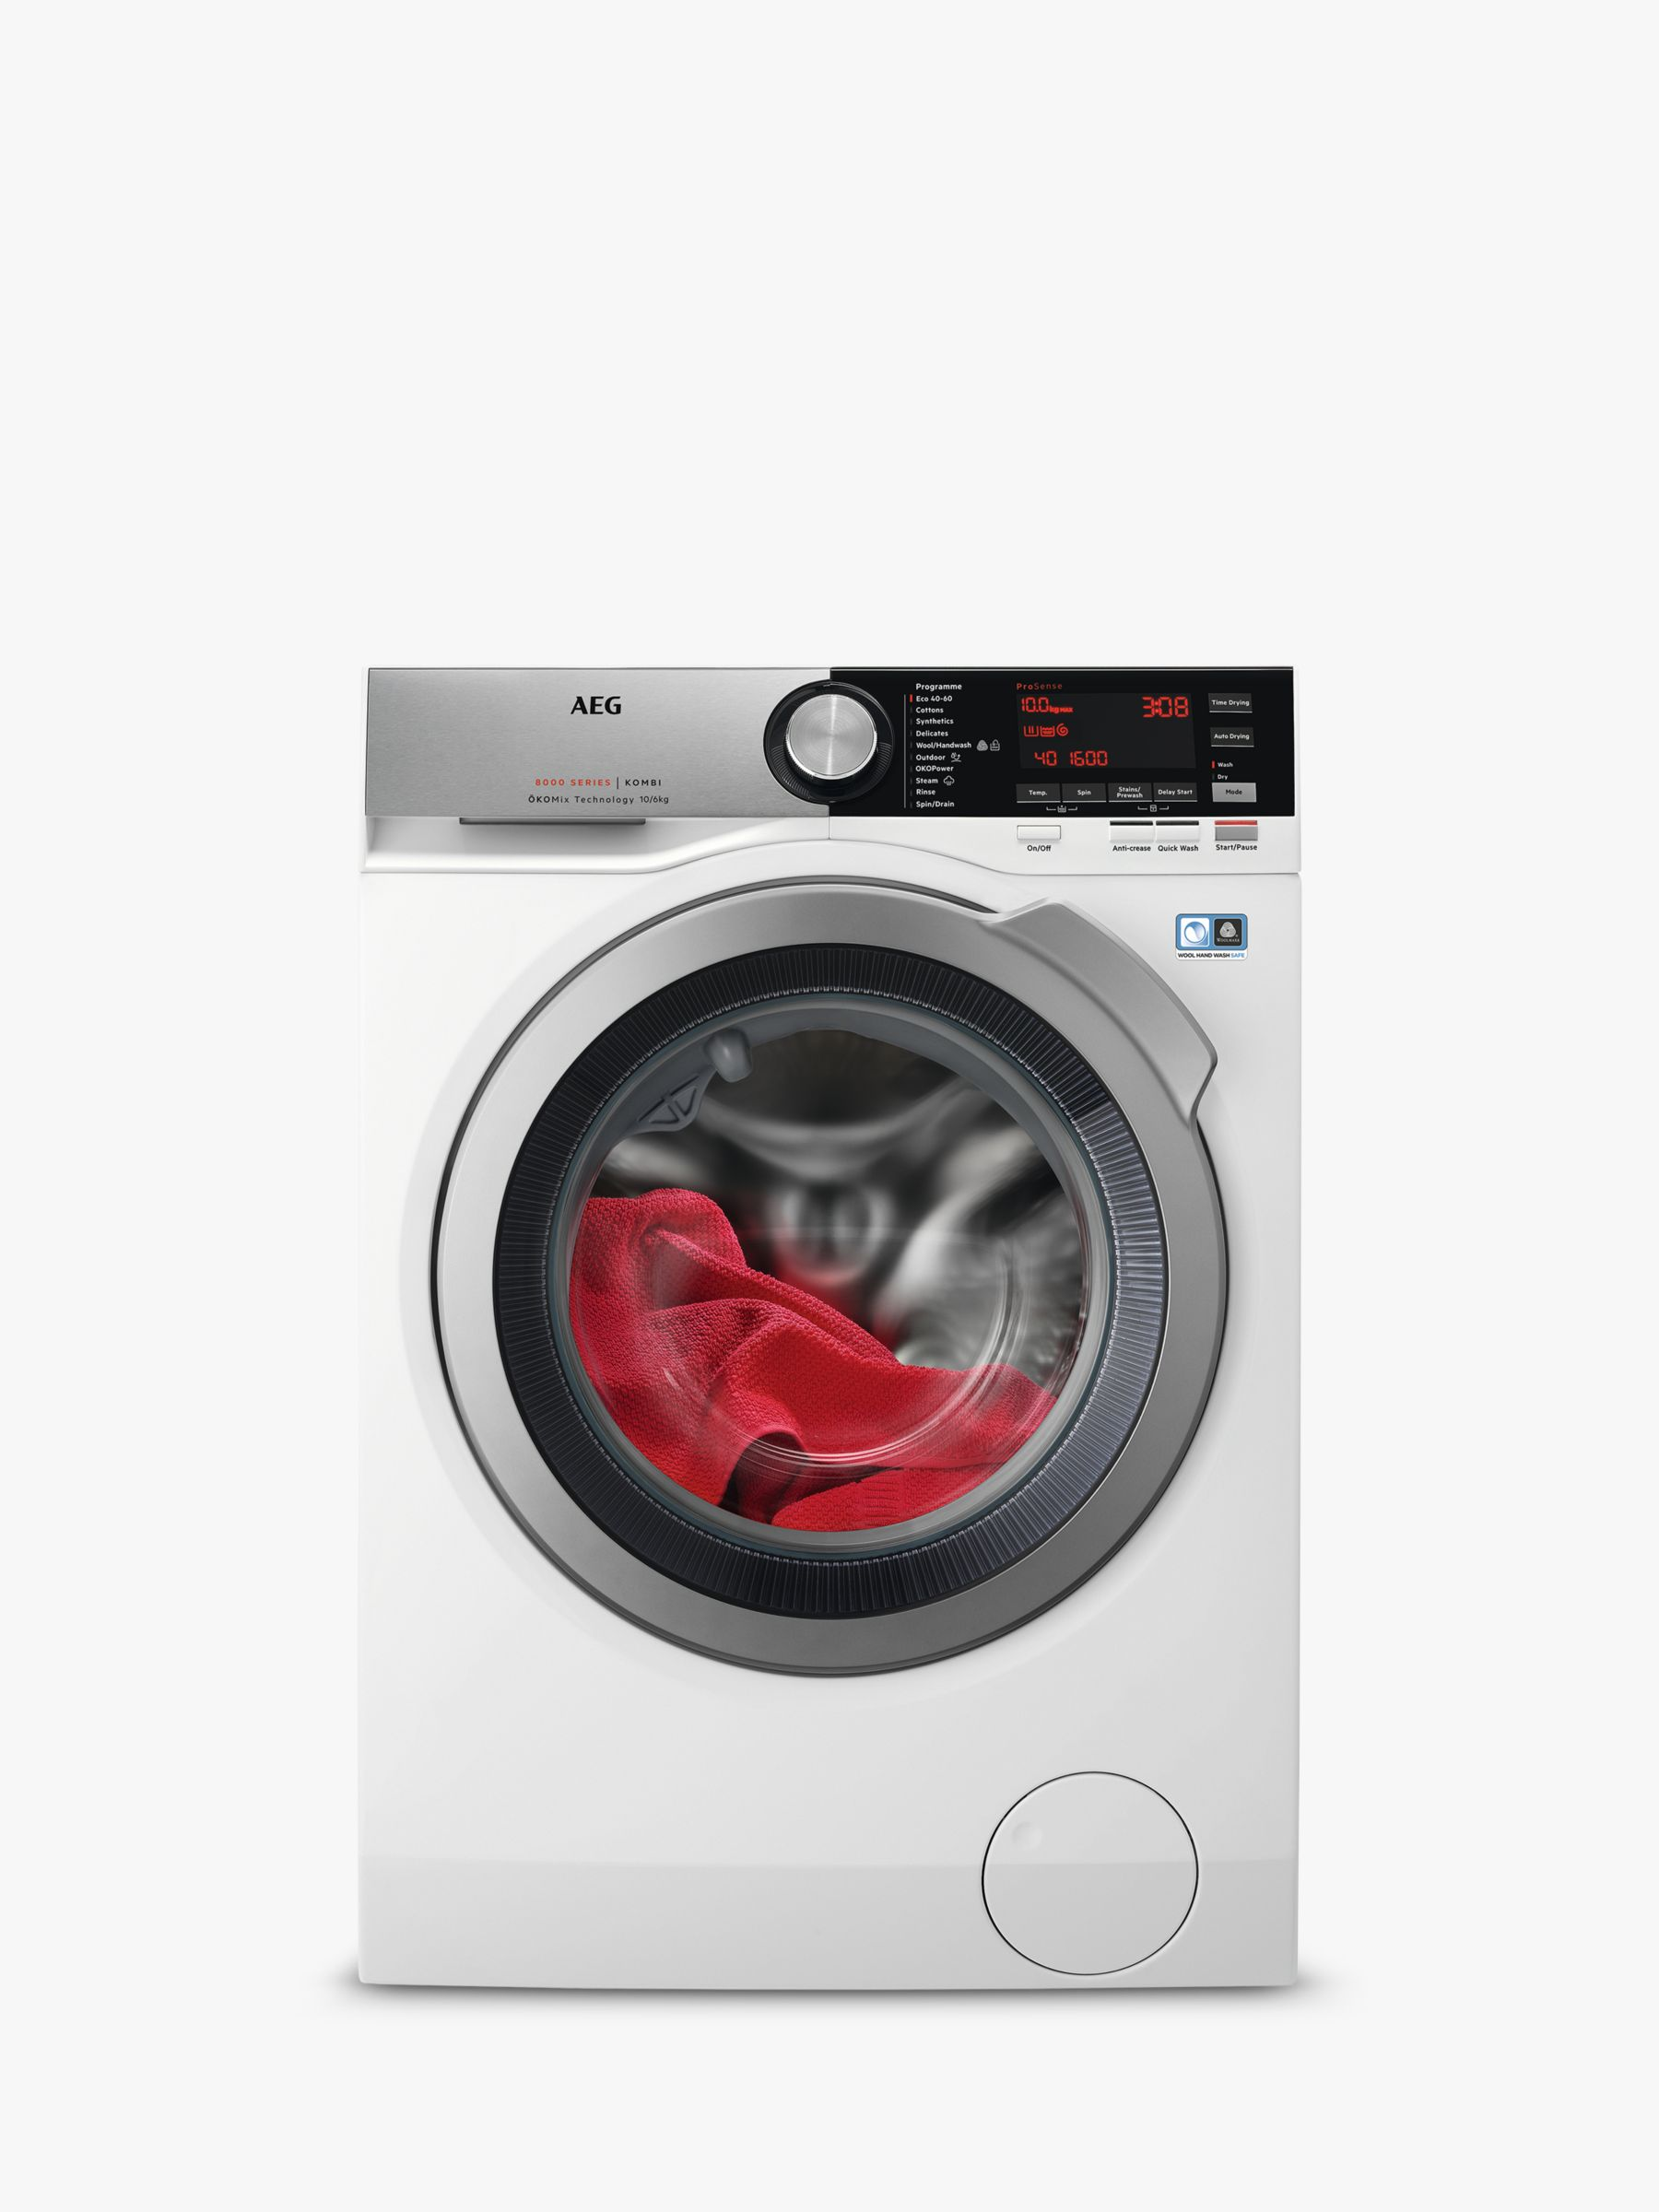 AEG AEG L8WEC166R Freestanding Washer Dryer, 10kg Wash/6kg Dry Load, A Energy Rating, 1600rpm Spin, White